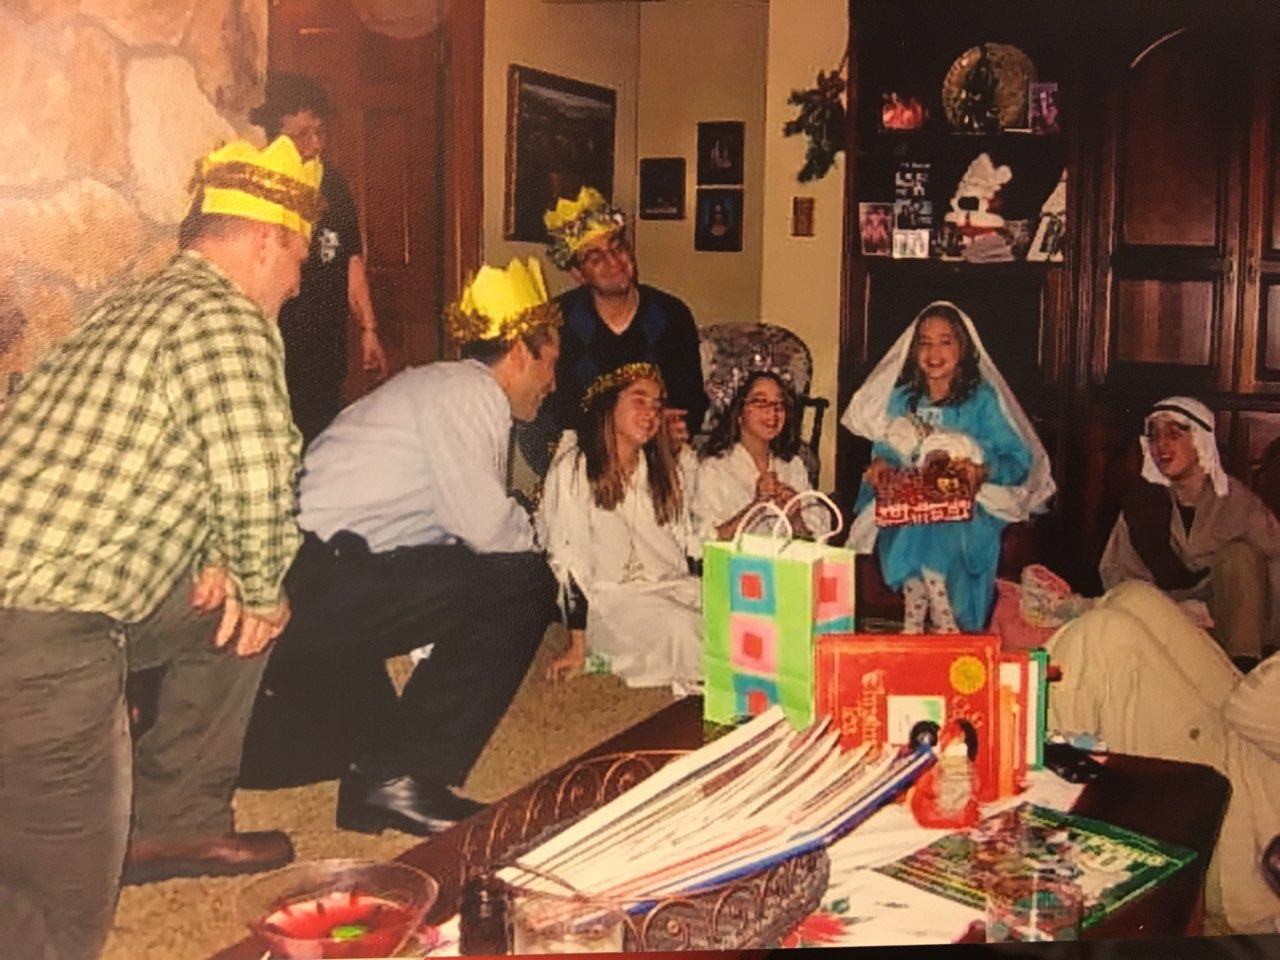 The Casey family smiling, decked out in their costumes,  as the gifts are being presented to baby Jesus at the  climax of the play.